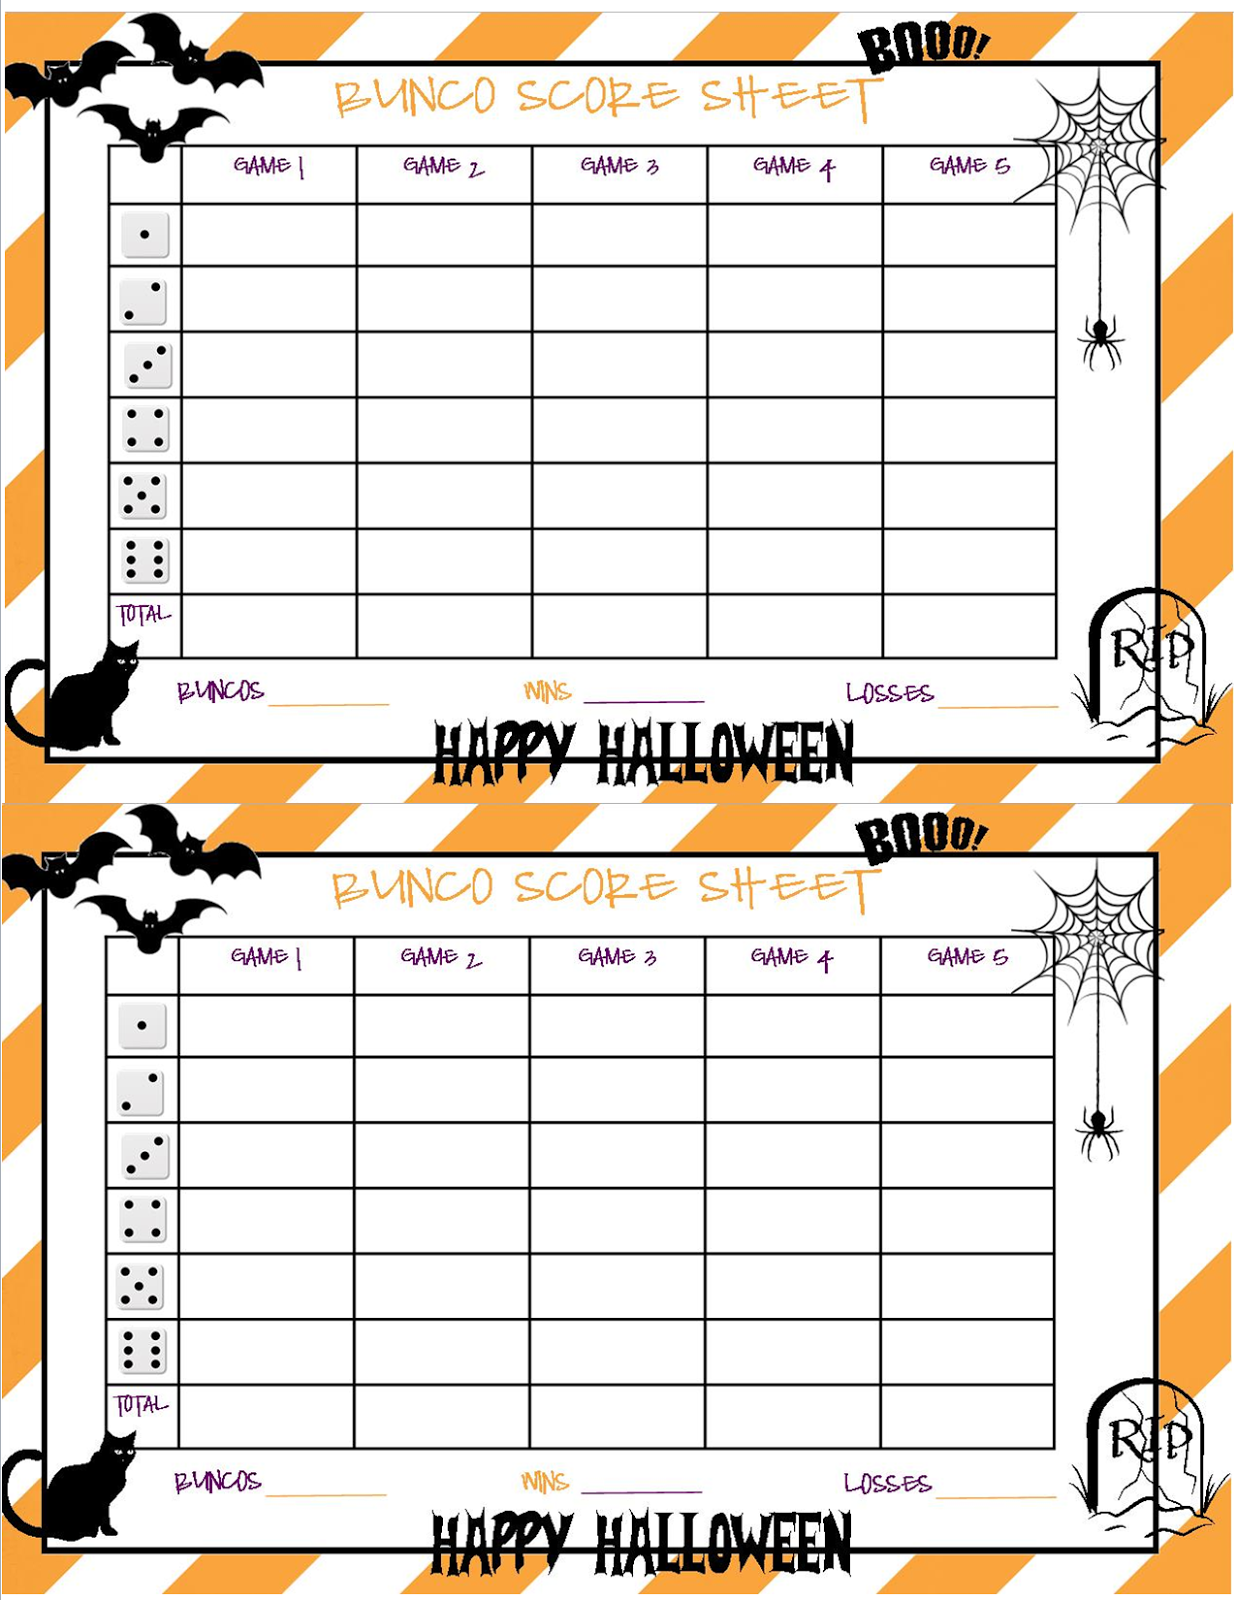 photo regarding Bunco Tally Sheets Printable referred to as Recipes against Stephanie: Halloween Bunco Sheet